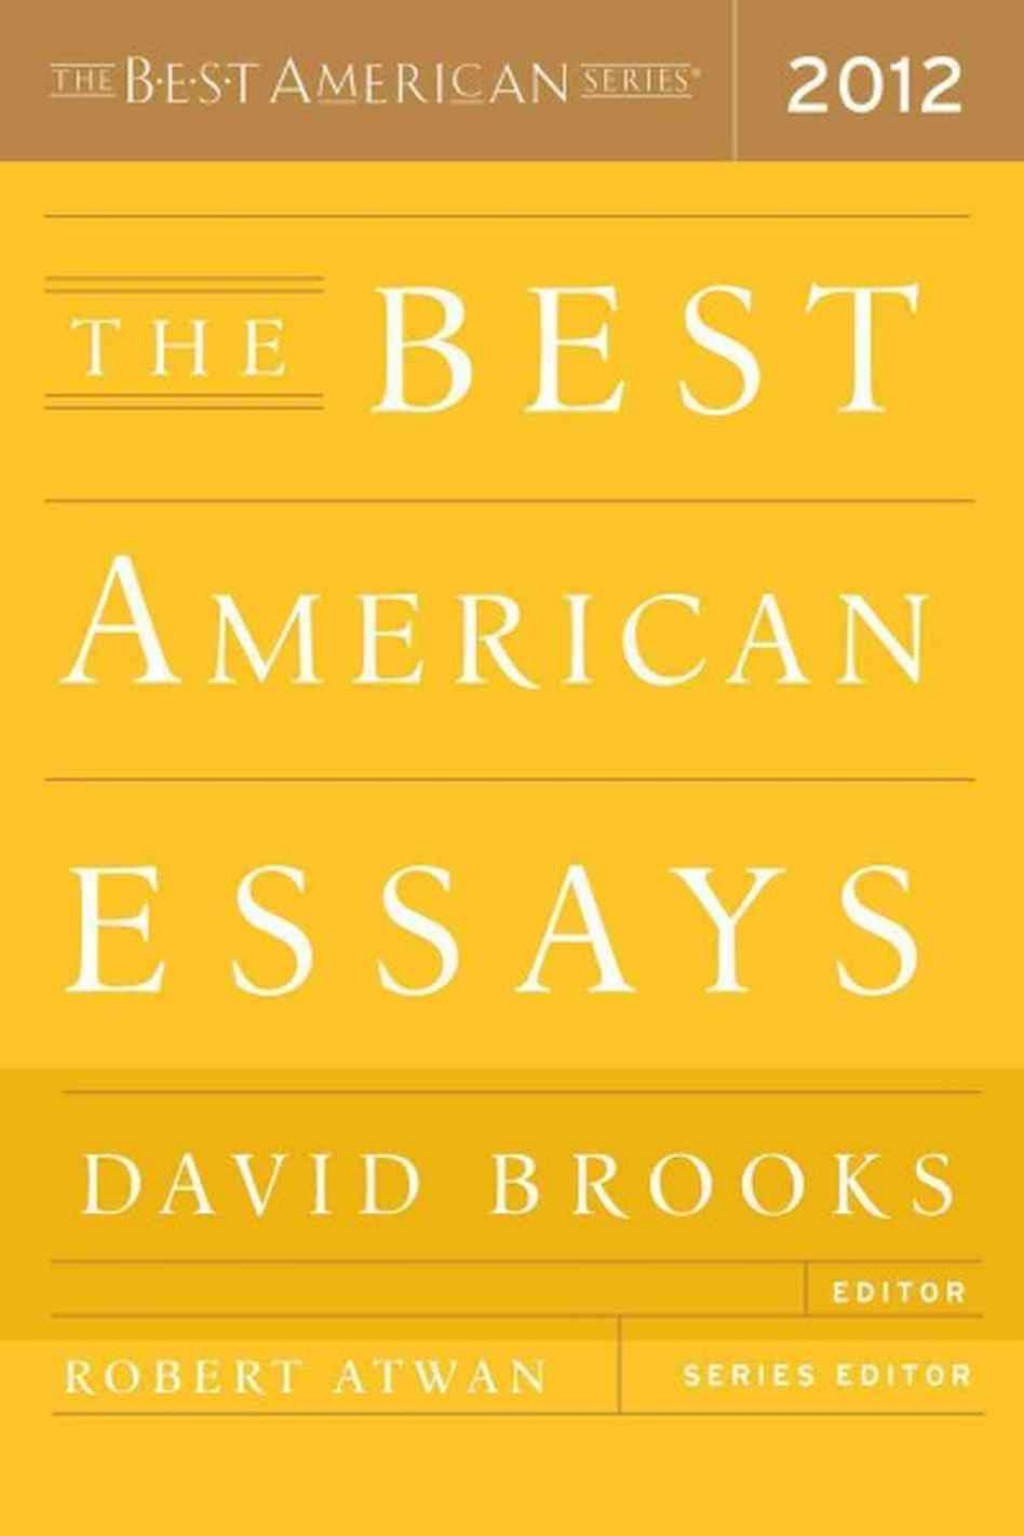 012 The Best American Essays 2012 Essay Wonderful 2013 Pdf Download Of Century Sparknotes 2017 Large